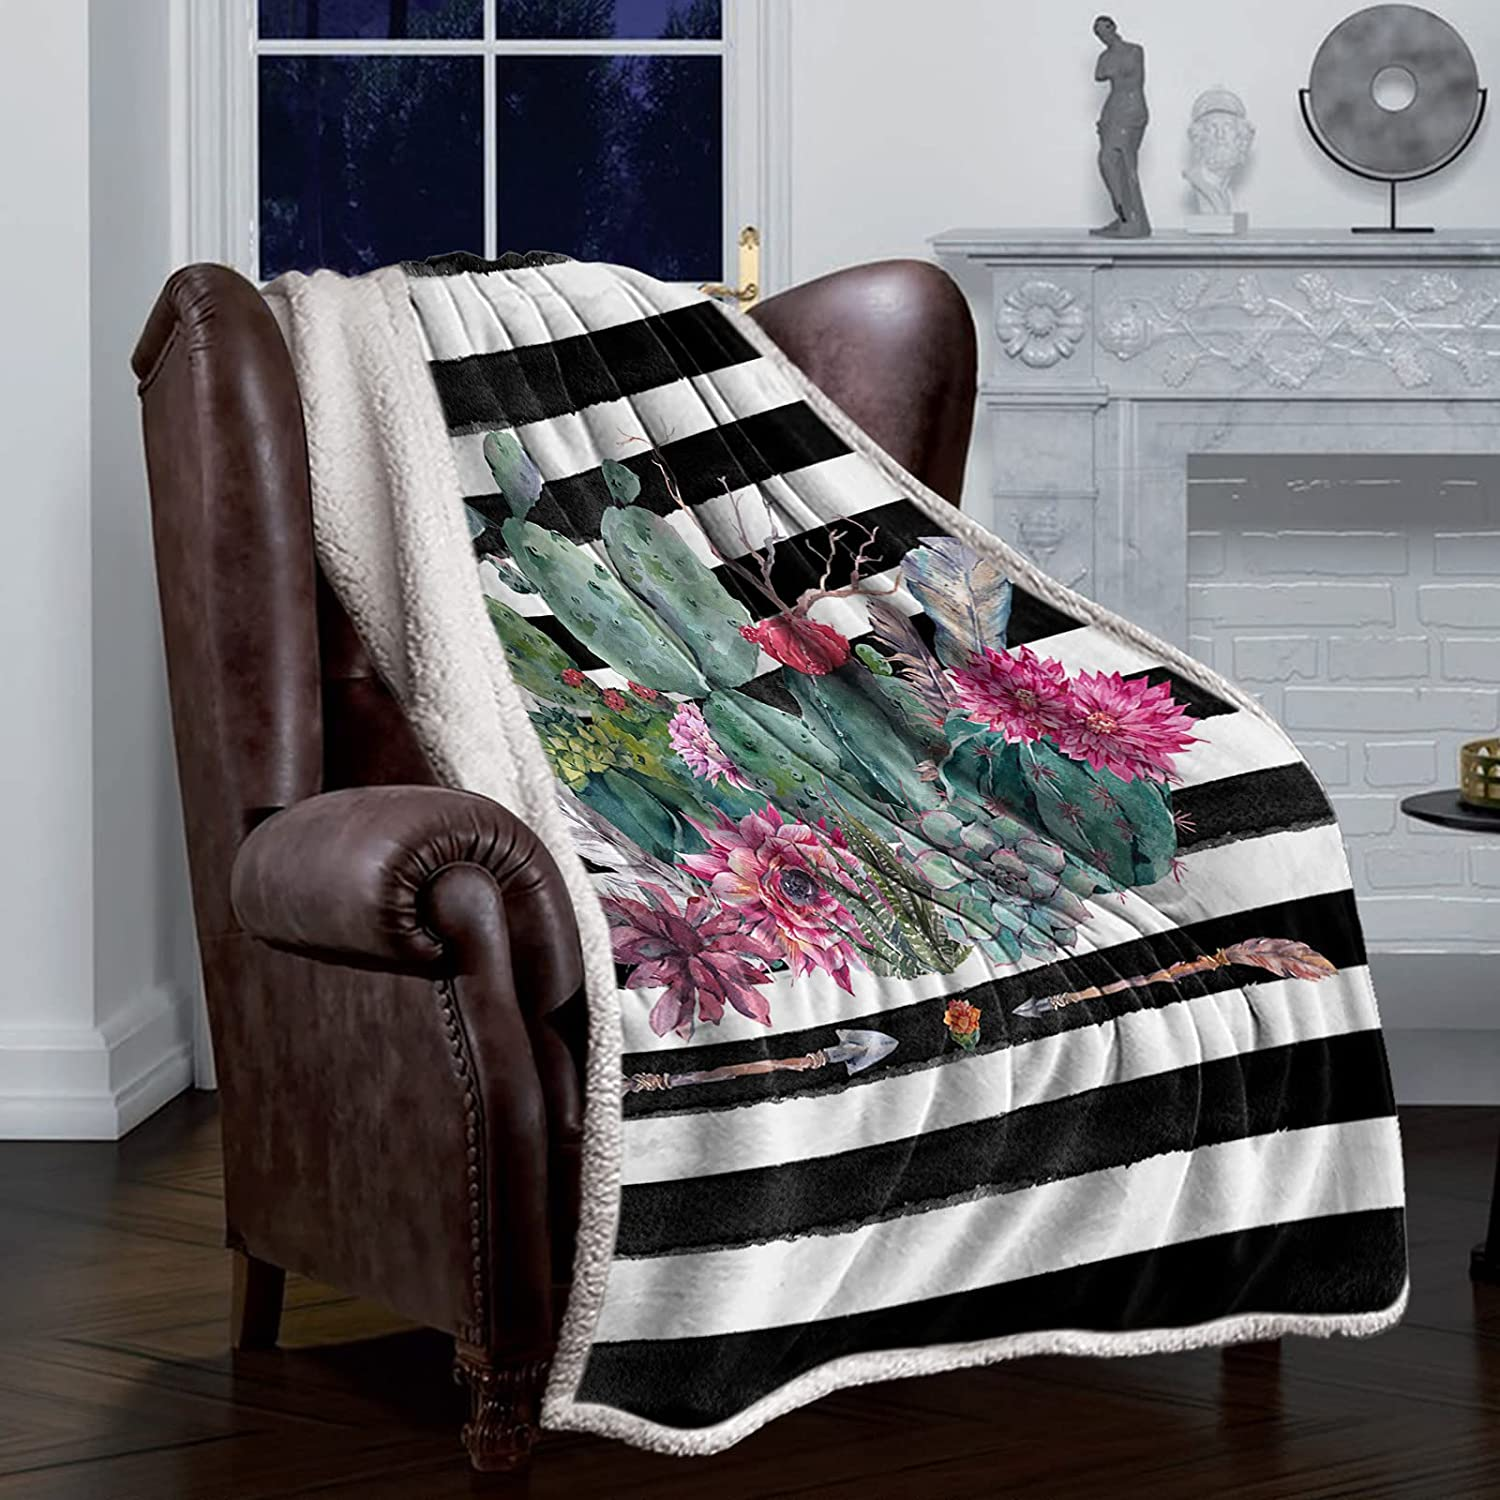 Throw Blanket Cozy Cheap SALE Start Comfy Sherpa Blankets Outlet ☆ Free Shipping Plan Fleece Watercolor